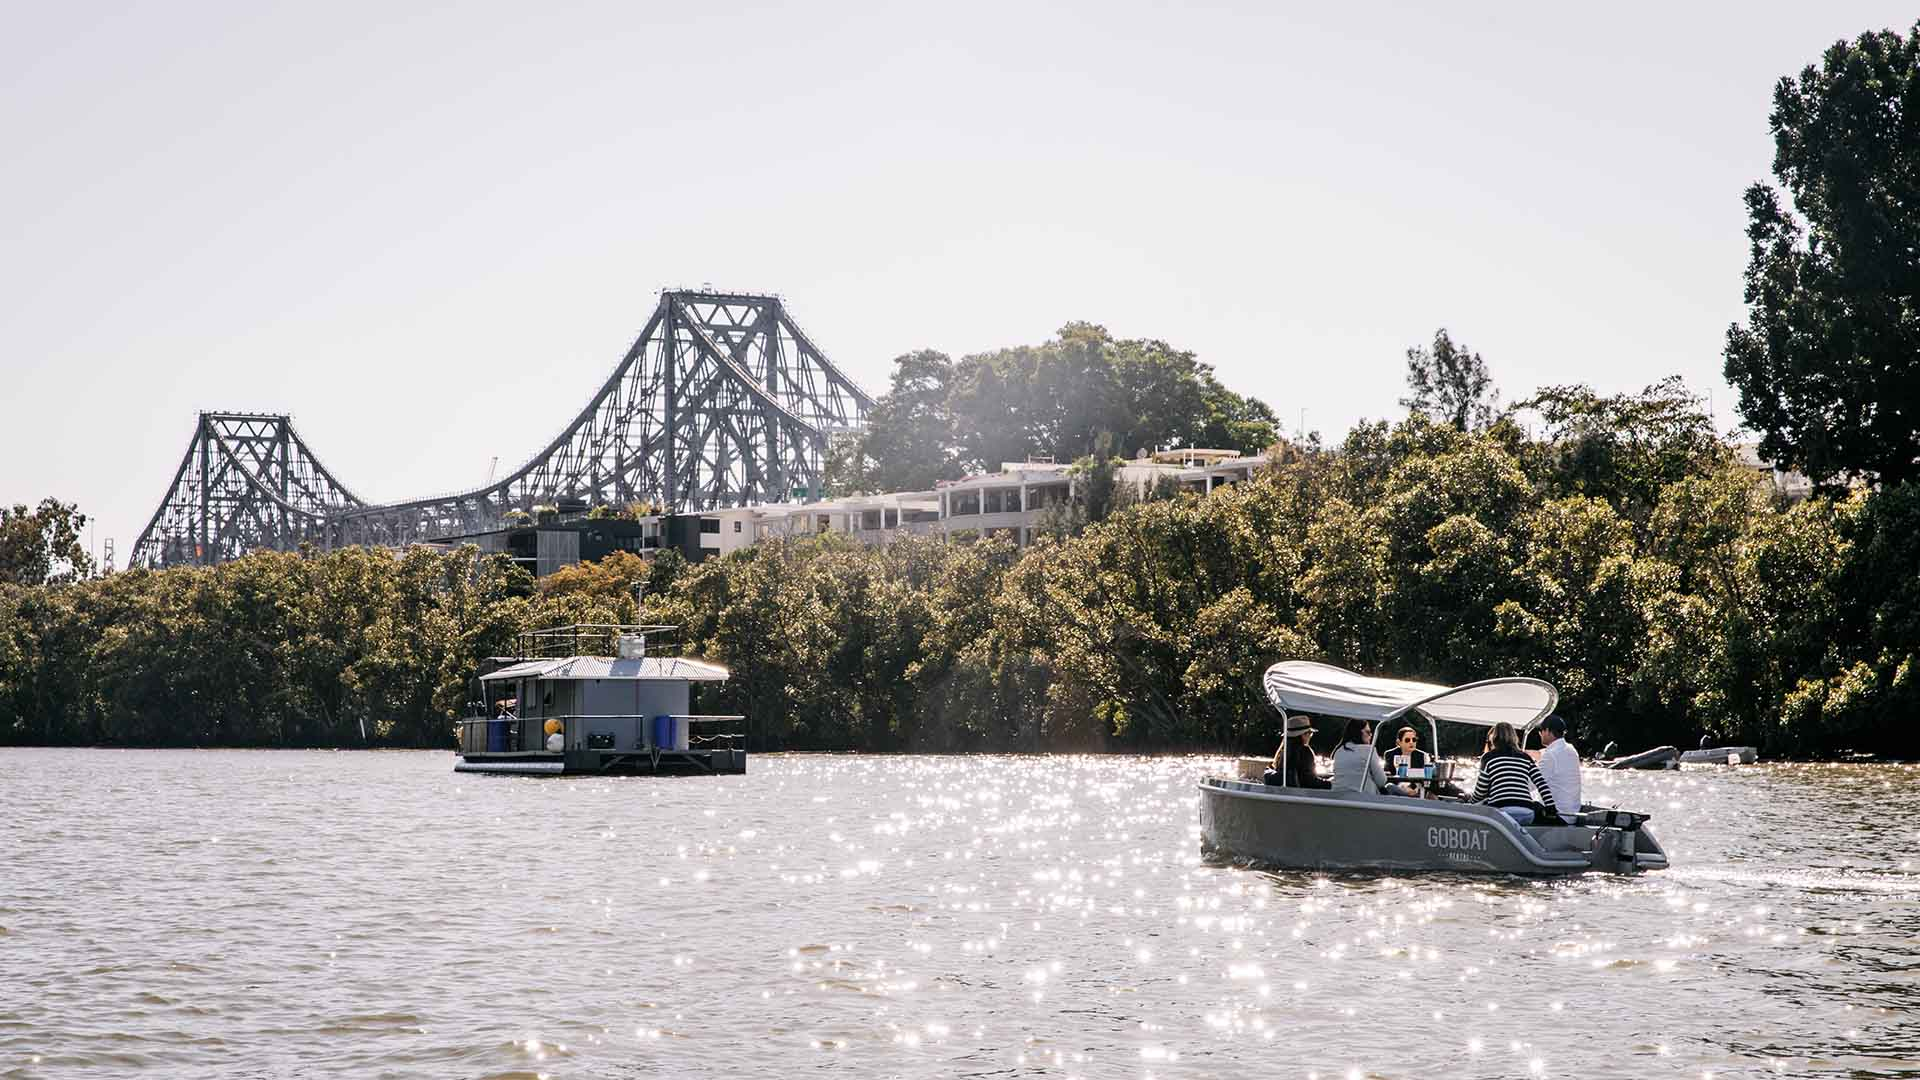 Brisbane's Pet-Friendly BYO Picnic Boats Have Started Sailing From Breakfast Creek